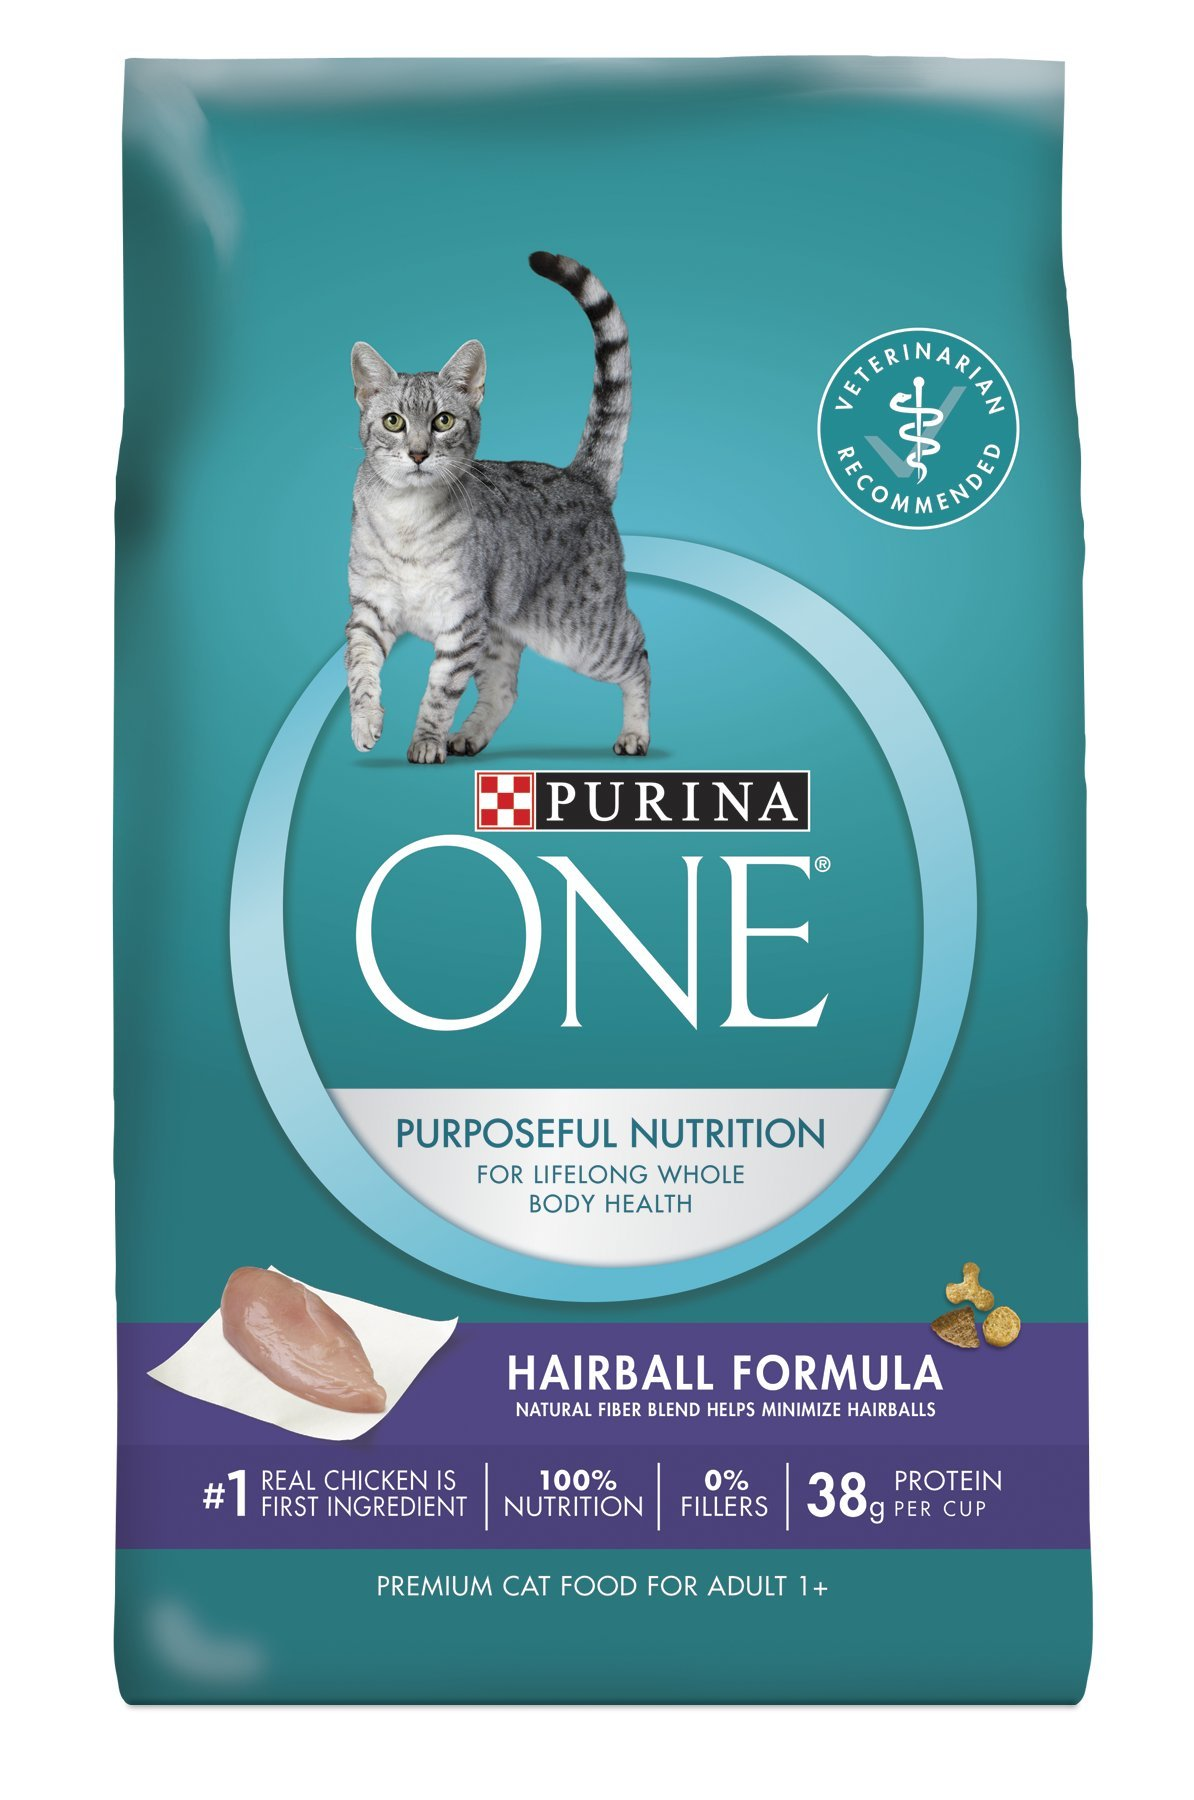 Purina ONE Hairball Formula Adult Premium Cat Food Standard Packaging